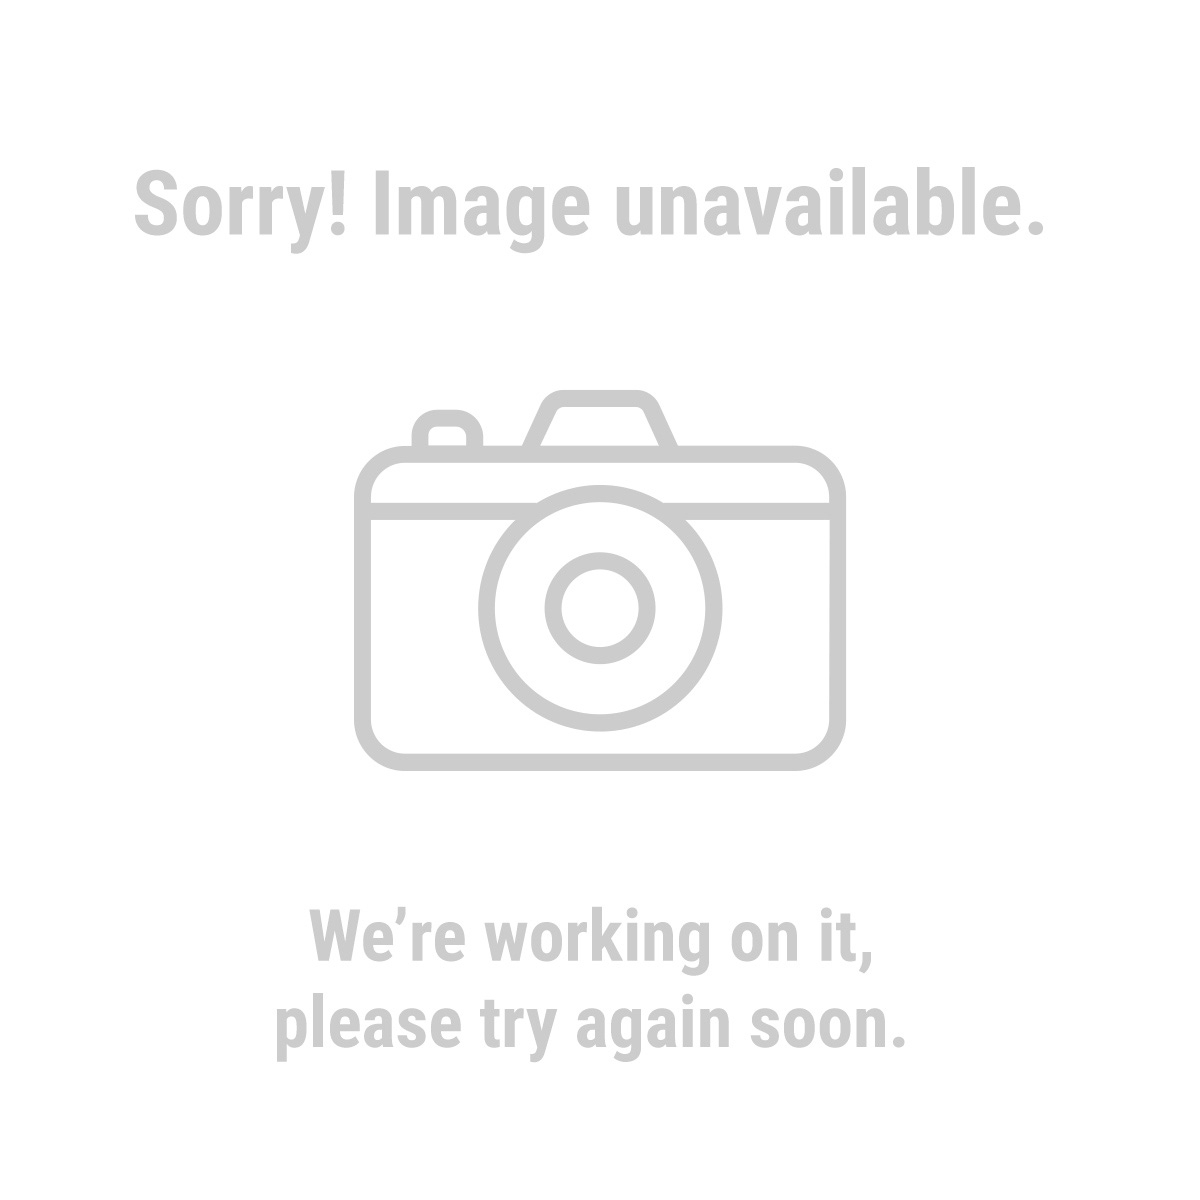 Haul-Master 38897 10 Cubic Ft. Heavy Duty Trailer Cart